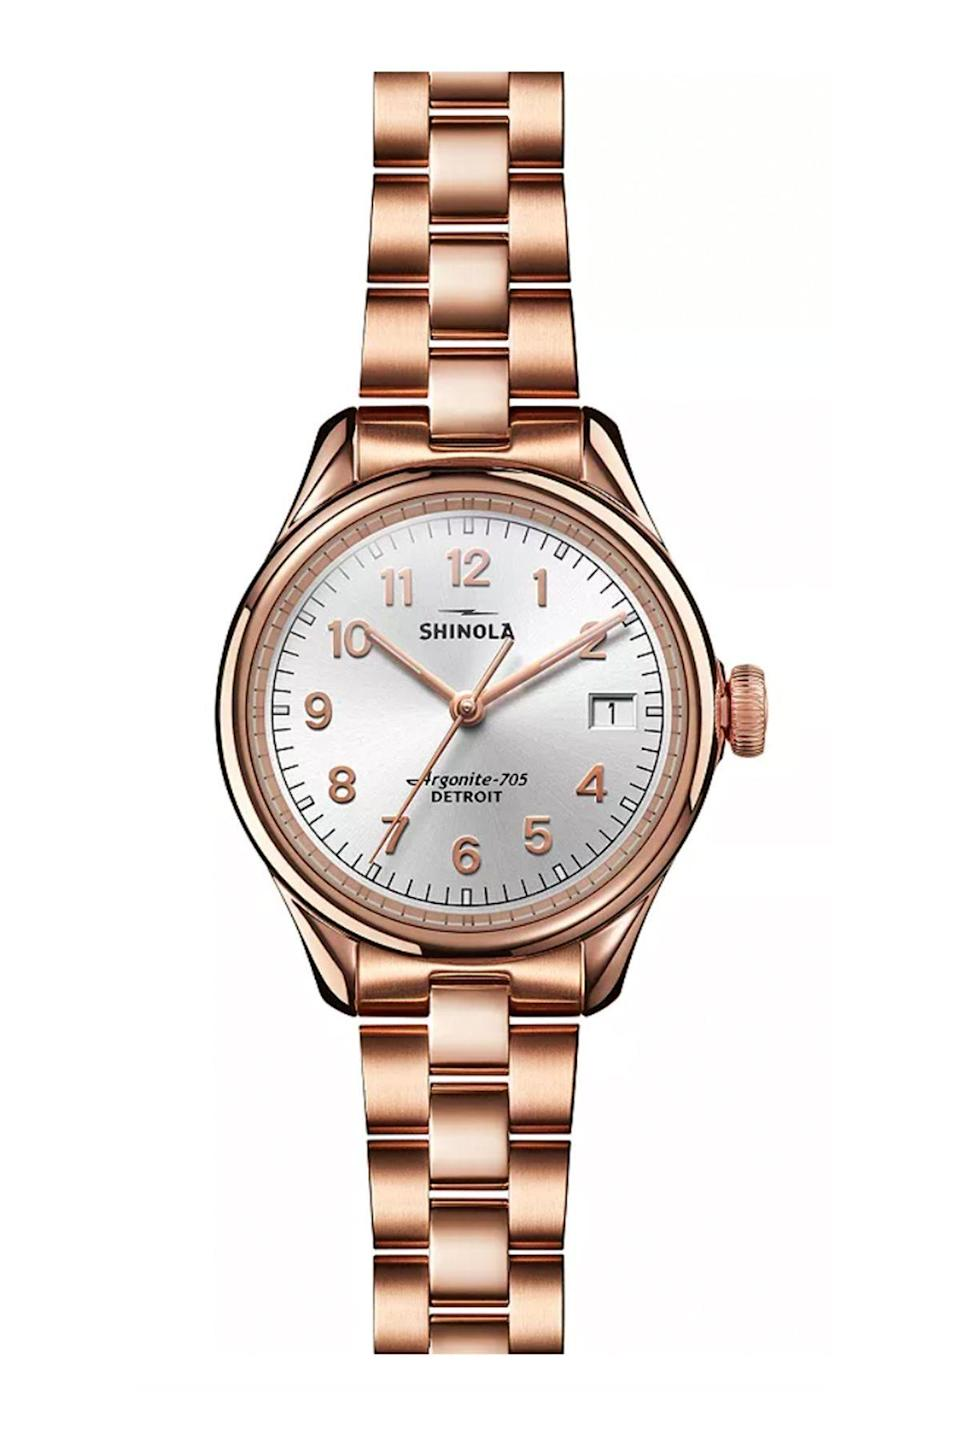 """<p><strong>Shinola</strong></p><p>bloomingdales.com</p><p><strong>$650.00</strong></p><p><a href=""""https://go.redirectingat.com?id=74968X1596630&url=https%3A%2F%2Fwww.bloomingdales.com%2Fshop%2Fproduct%2Fshinola-vinton-watch-32mm%3FID%3D3685959&sref=https%3A%2F%2Fwww.townandcountrymag.com%2Fstyle%2Fjewelry-and-watches%2Fg36186288%2Fbest-rose-gold-watches-women%2F"""" rel=""""nofollow noopener"""" target=""""_blank"""" data-ylk=""""slk:Shop Now"""" class=""""link rapid-noclick-resp"""">Shop Now</a></p><p>Simple and classic, but the rose gold makes it fun.</p>"""